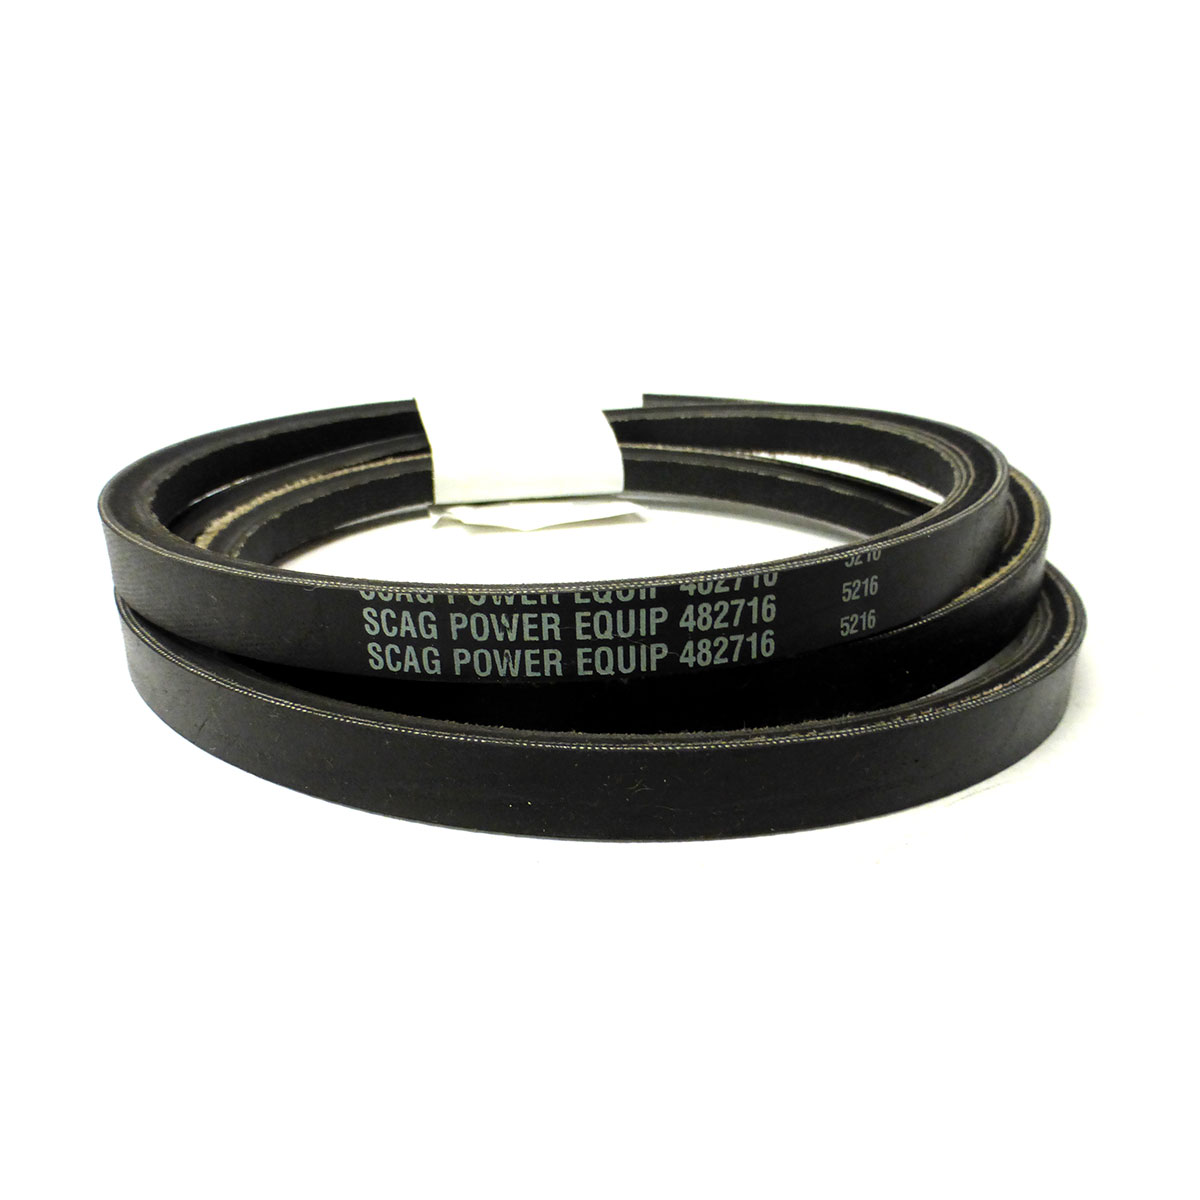 Scag Pump Drive Belt STC 482716